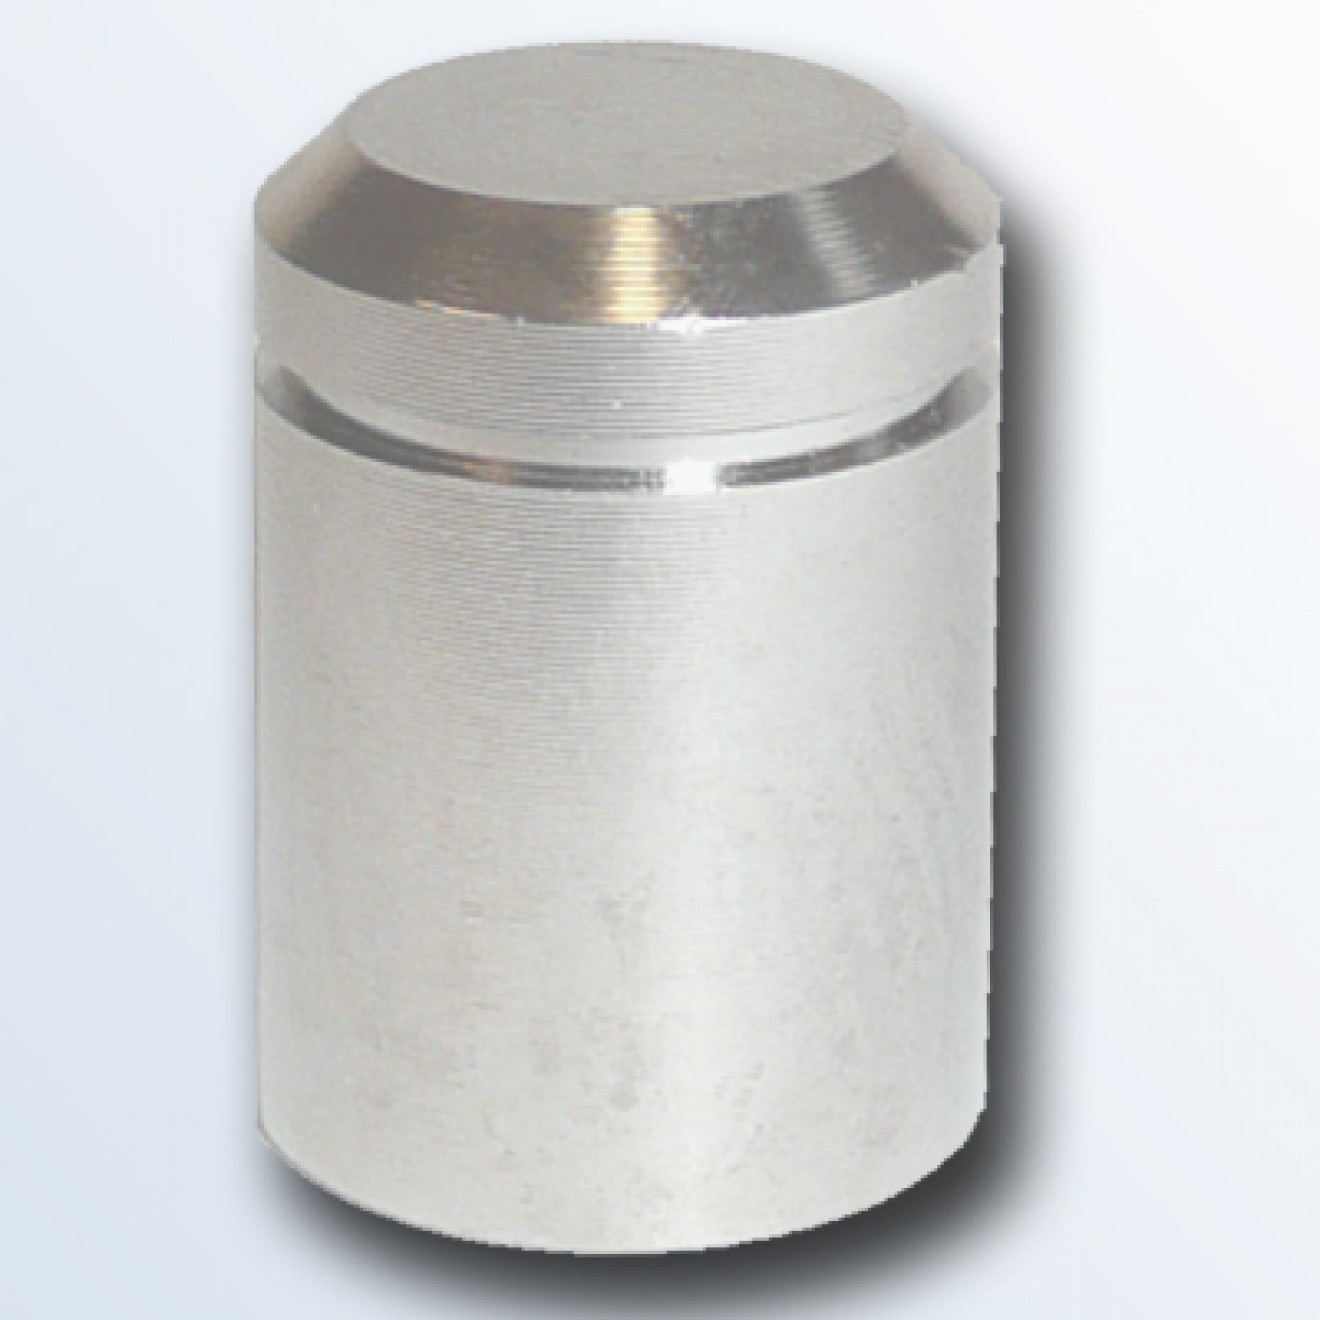 stahlbus Dust Cap - Groove - nickel-plated